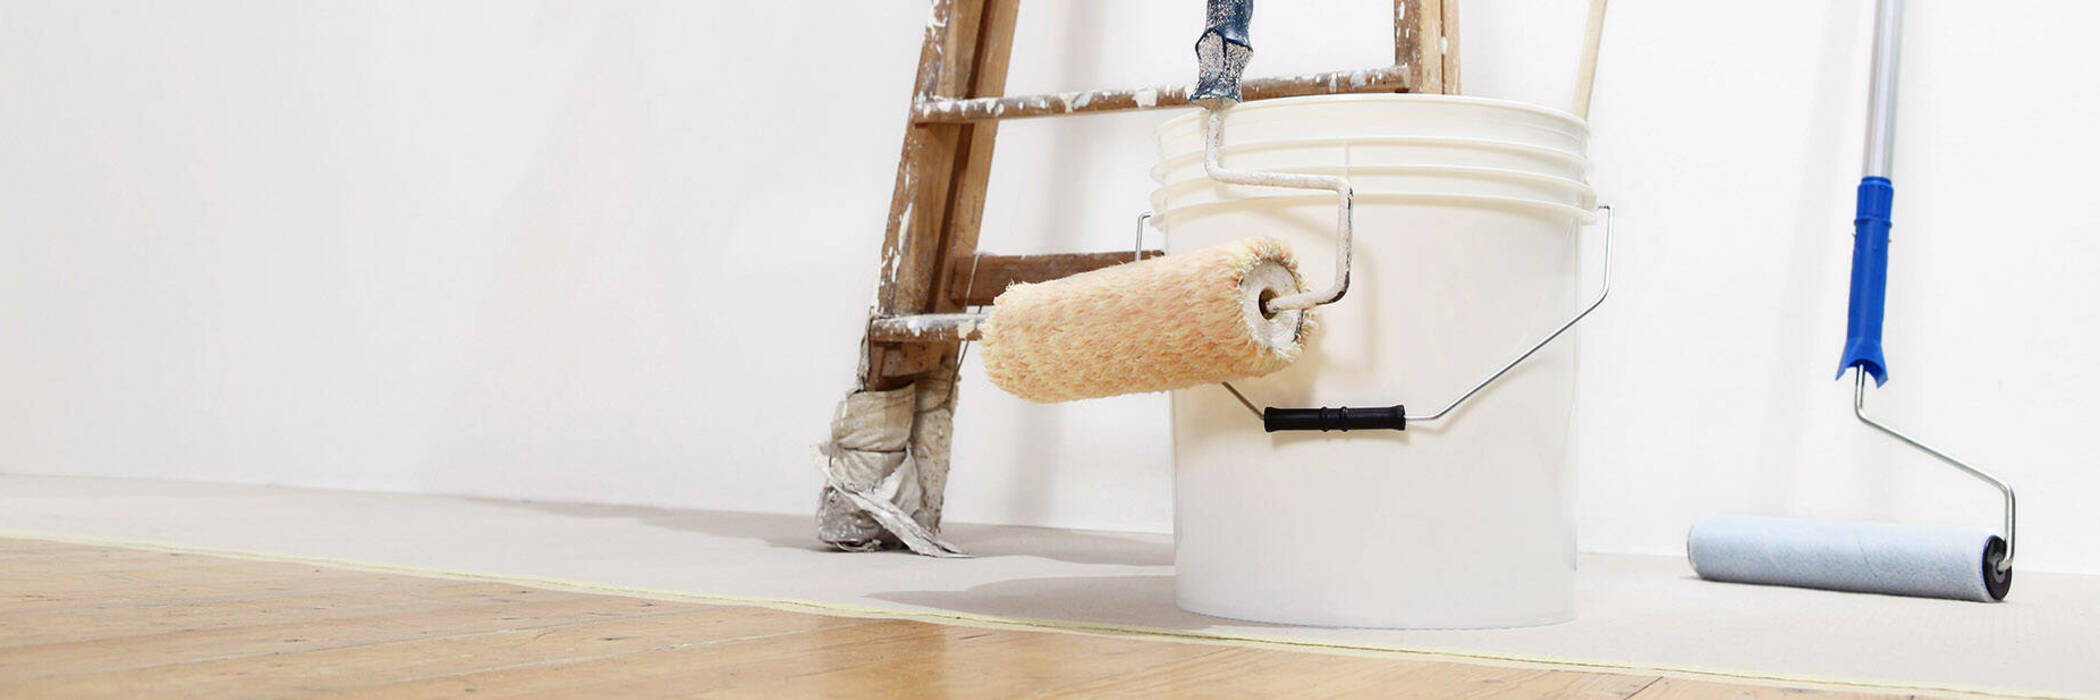 painting roller, bucket and ladder